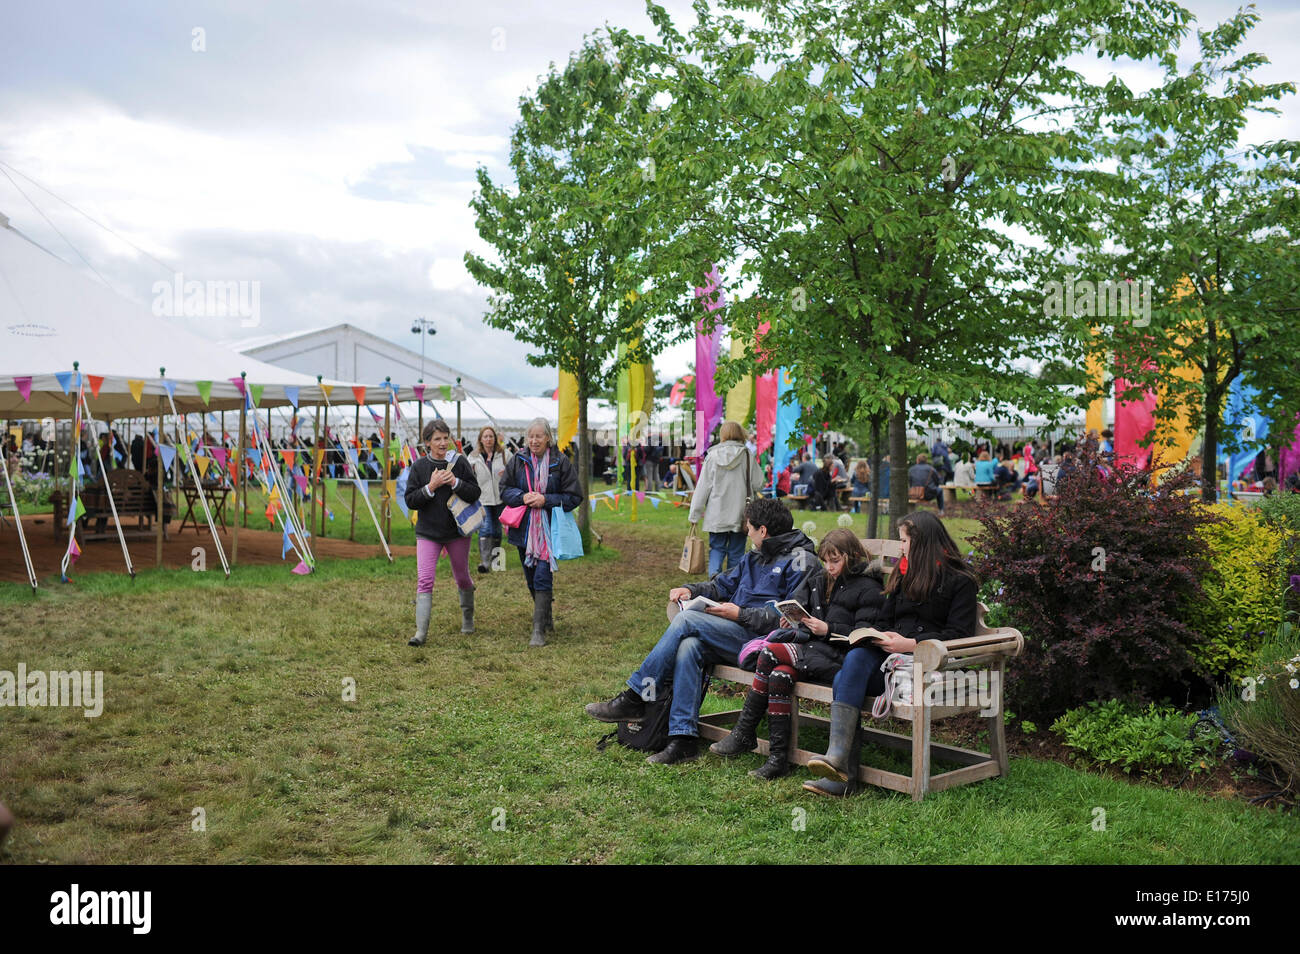 Hay on Wye, Wales UK, Sunday 25 May 2014 Thousands of people descend on the Hay on Wye  on the fourth day of the 2014 Daily Telegraph Hay Literature Festival, Wales UK photo Credit: keith morris/Alamy Live News - Stock Image